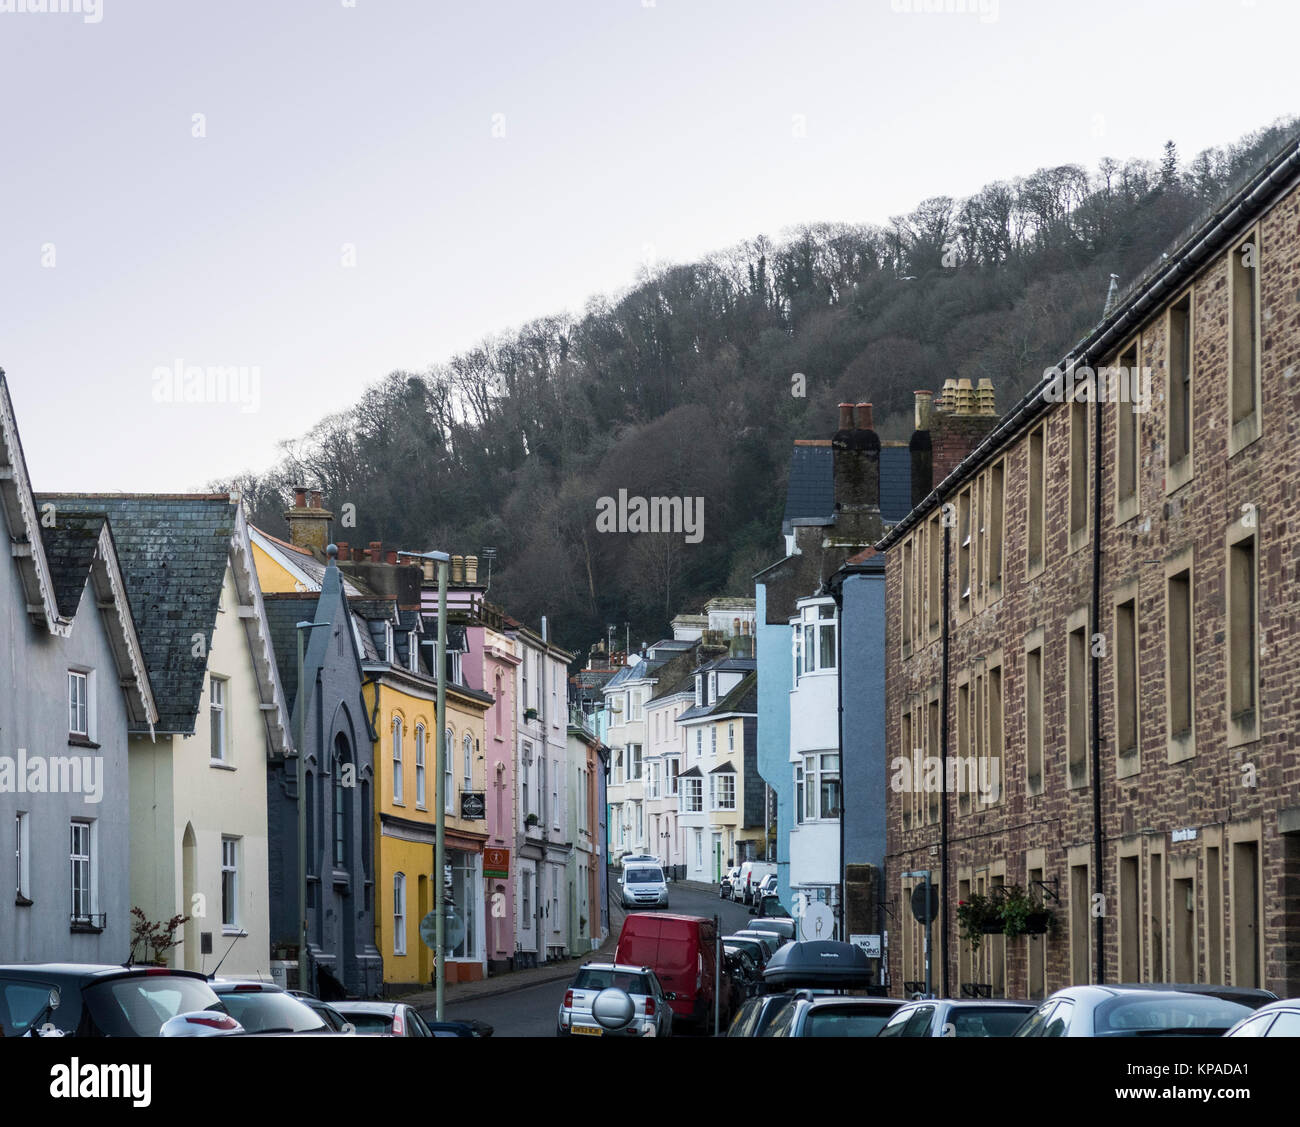 View along Higher Street, Dartmouth, Devon, with a wide variation of houses on each side. - Stock Image